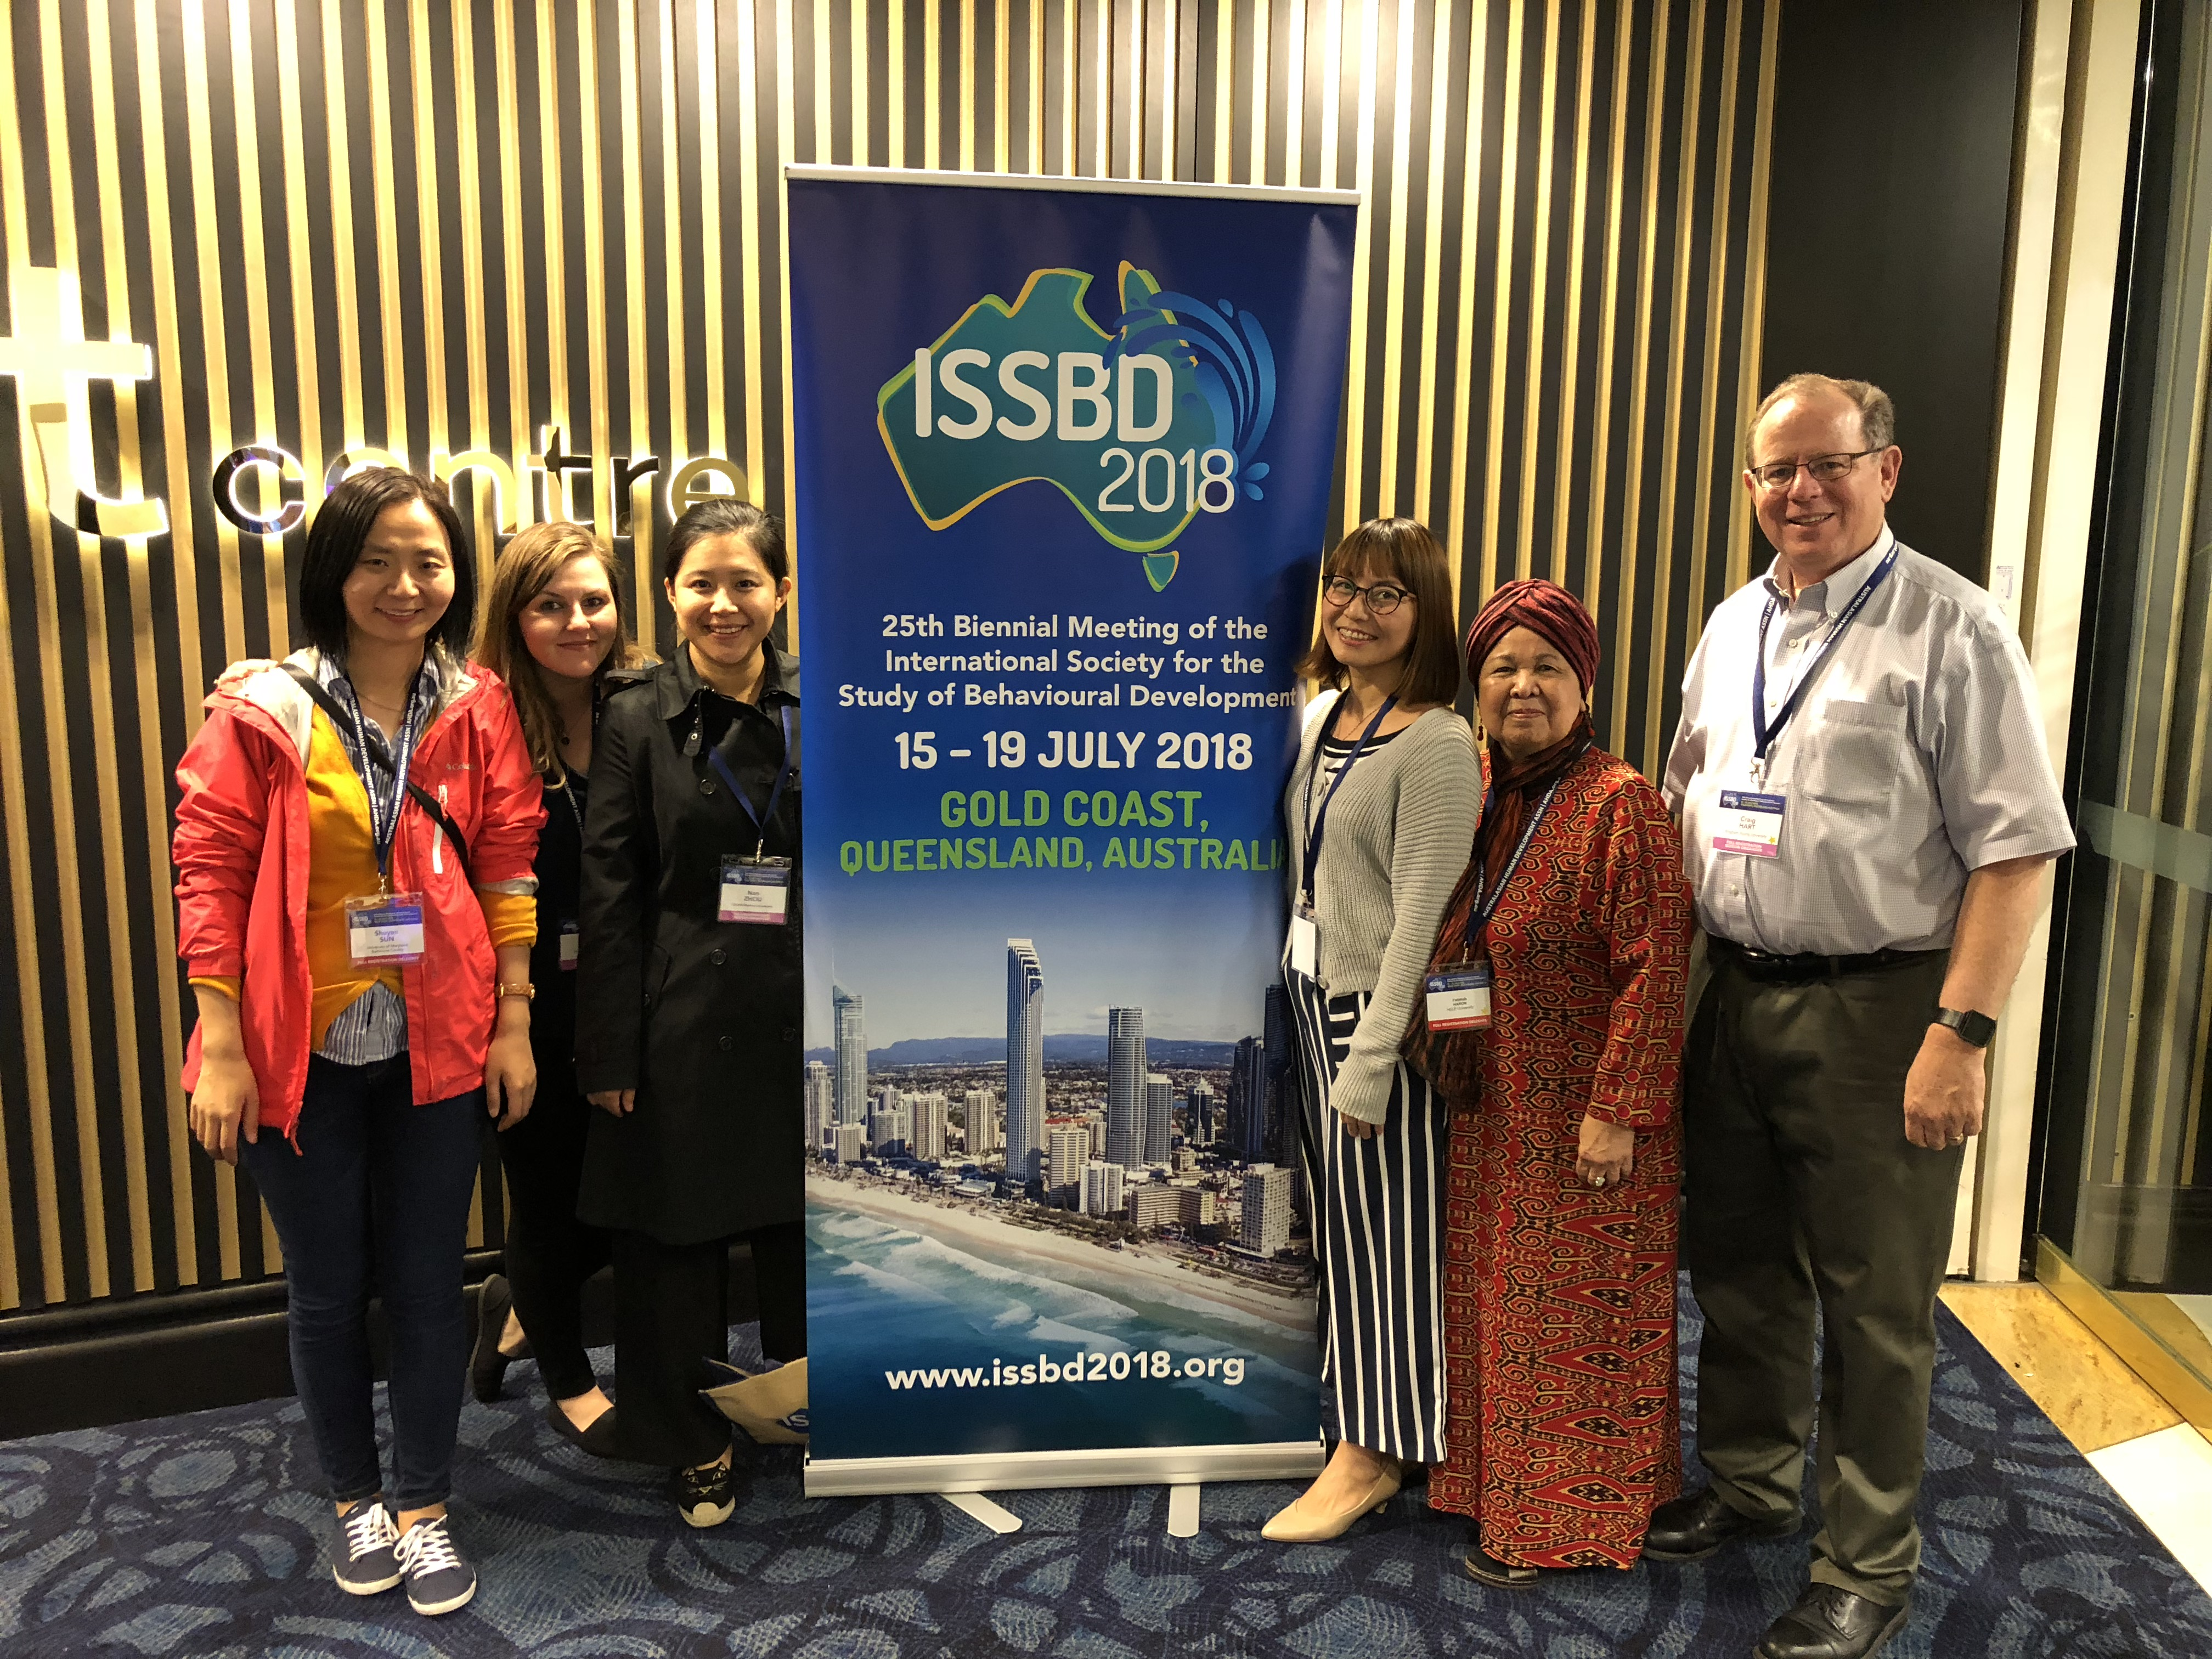 ISSBD 2018 in Gold Coast, Australia